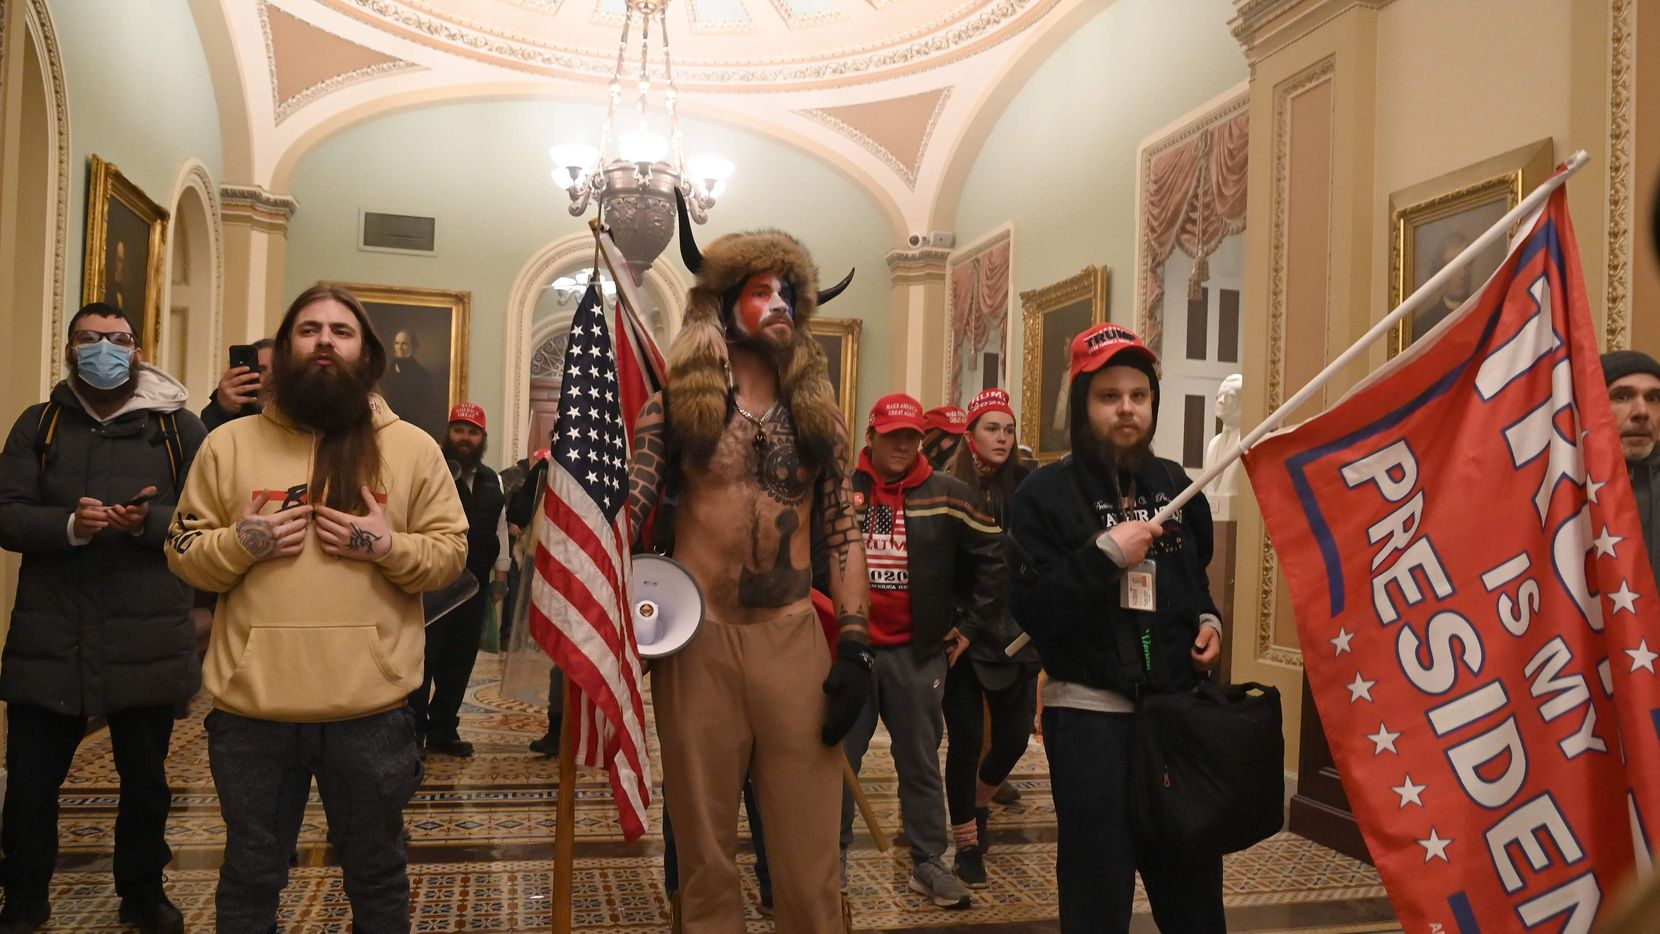 Supporters of President Donald Trump enter the US Capitol on January 6, 2021, after breeching security and interrupting Congress as it certified the Electoral College vote.